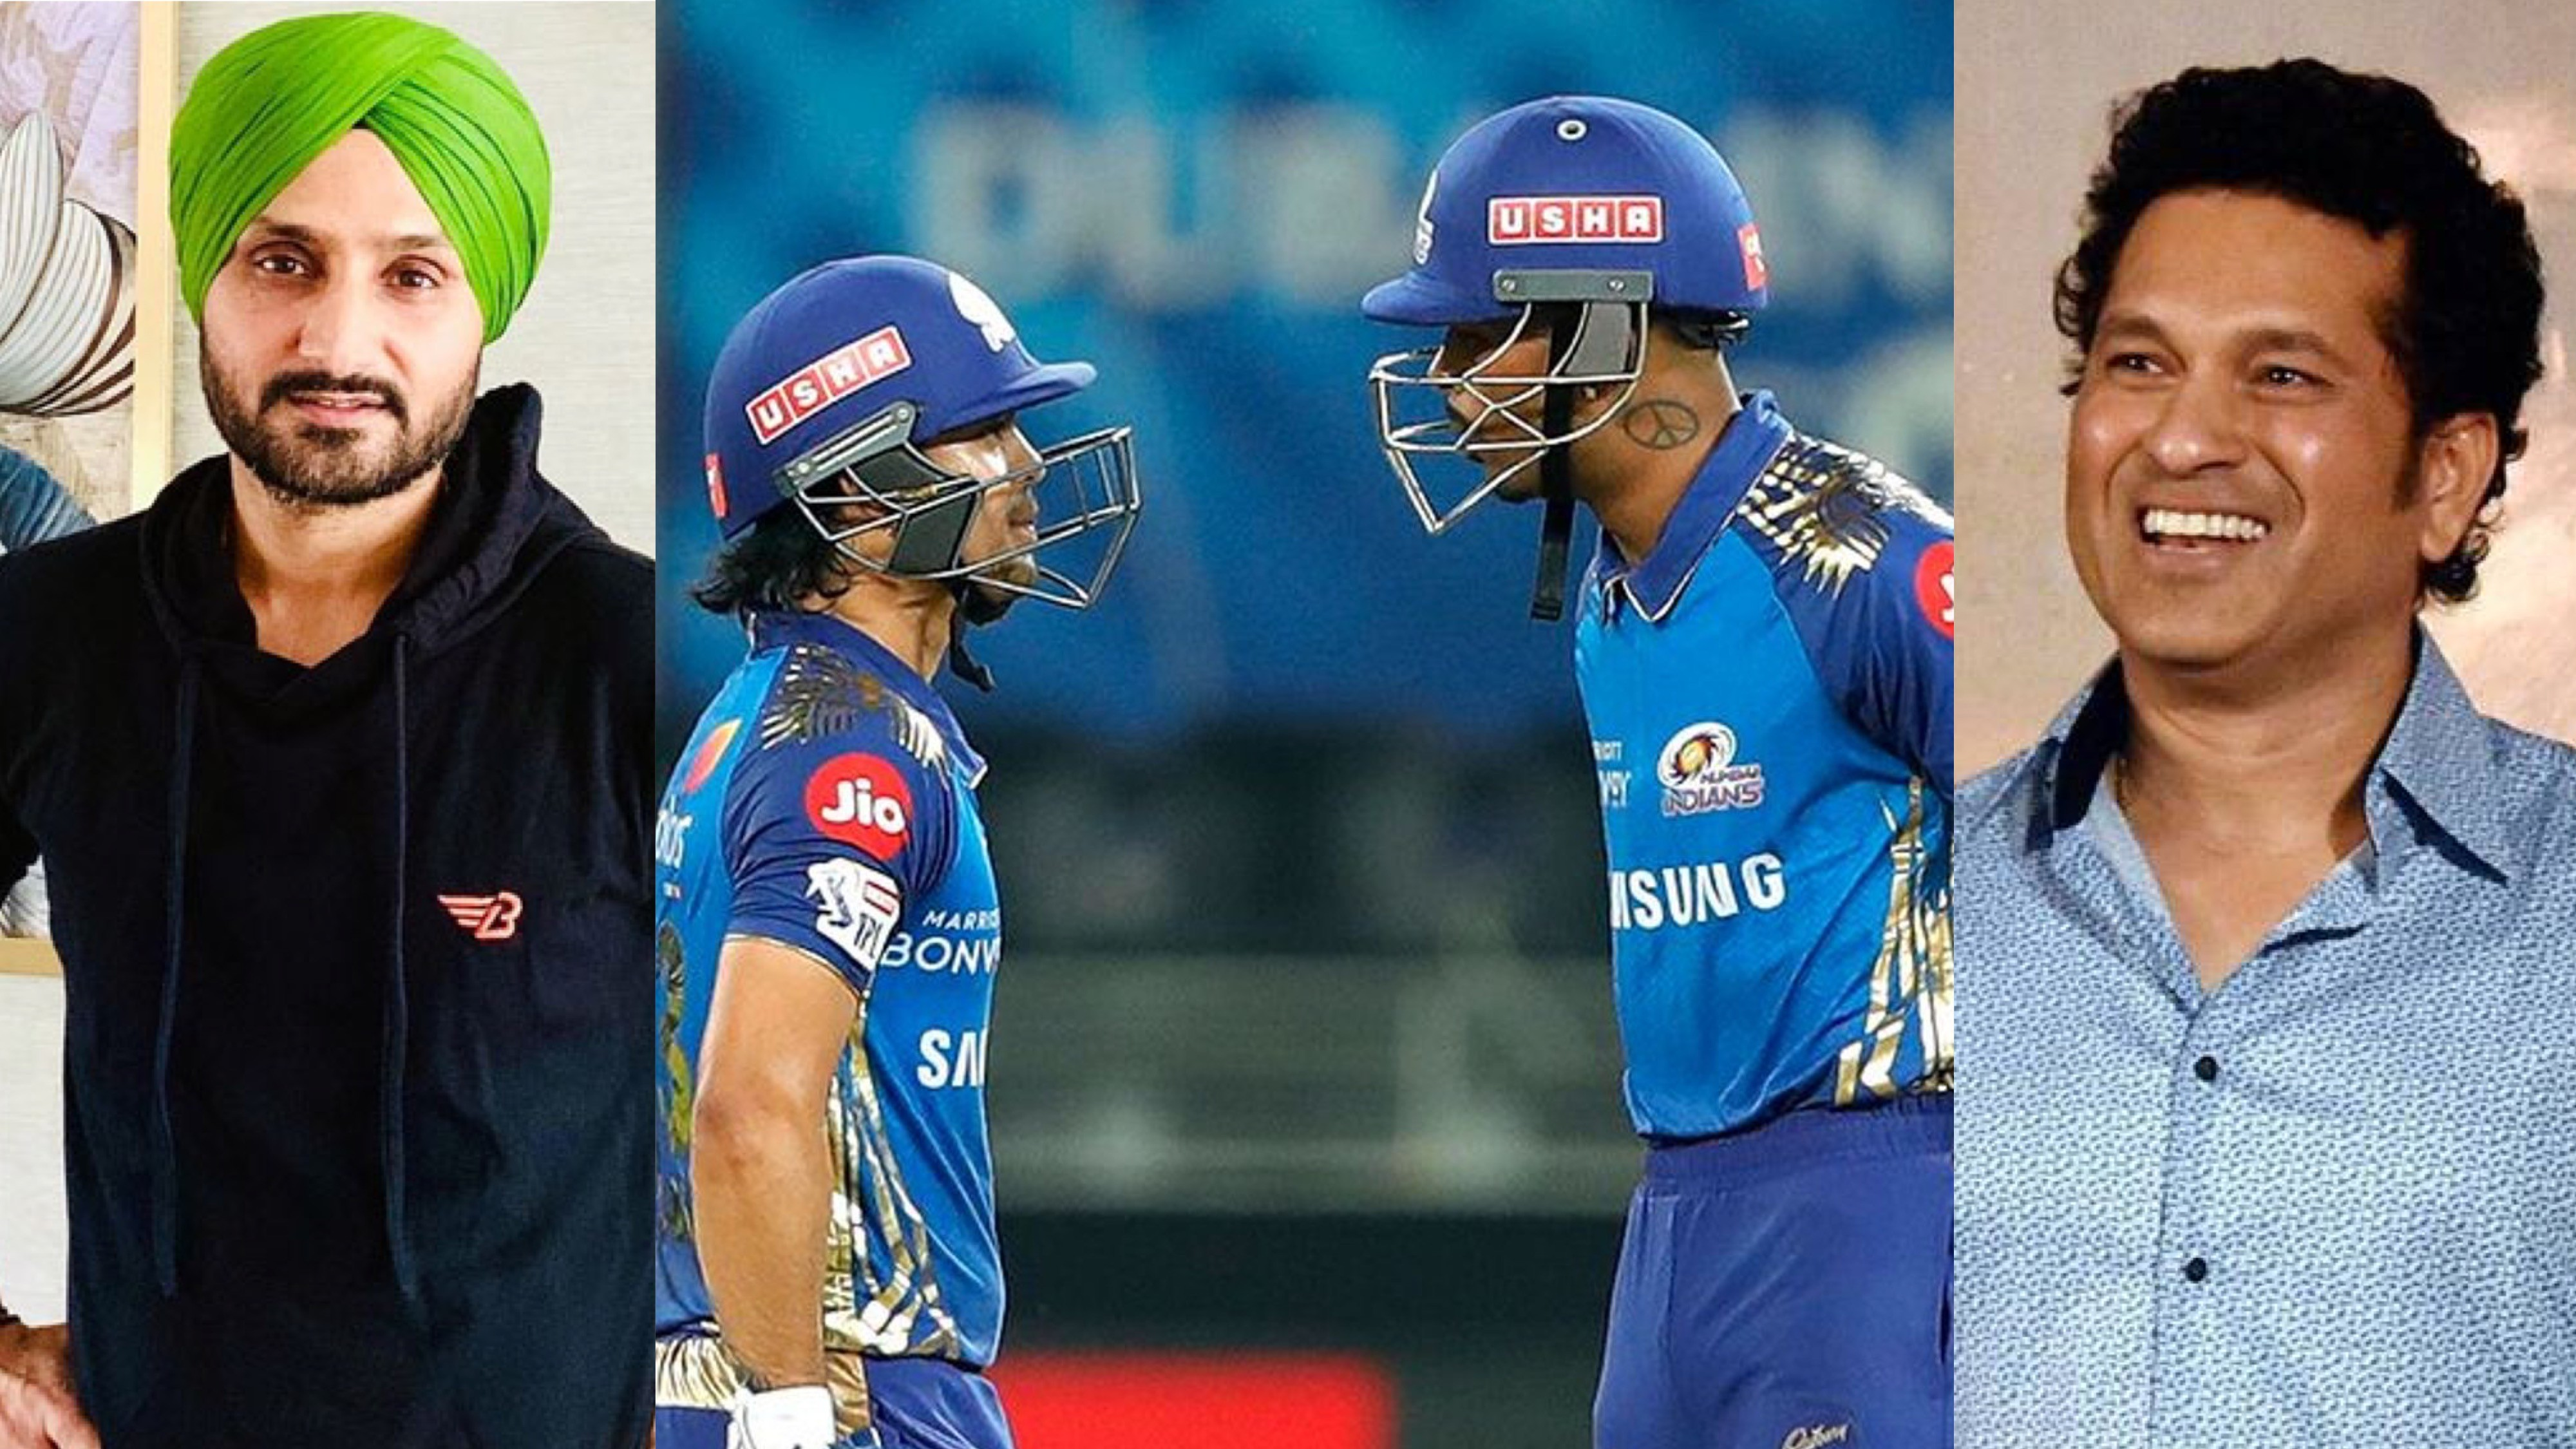 IPL 2020: Cricket fraternity reacts as Kishan & Pandya's blitz takes MI to 200/5 against DC in Qualifier 1